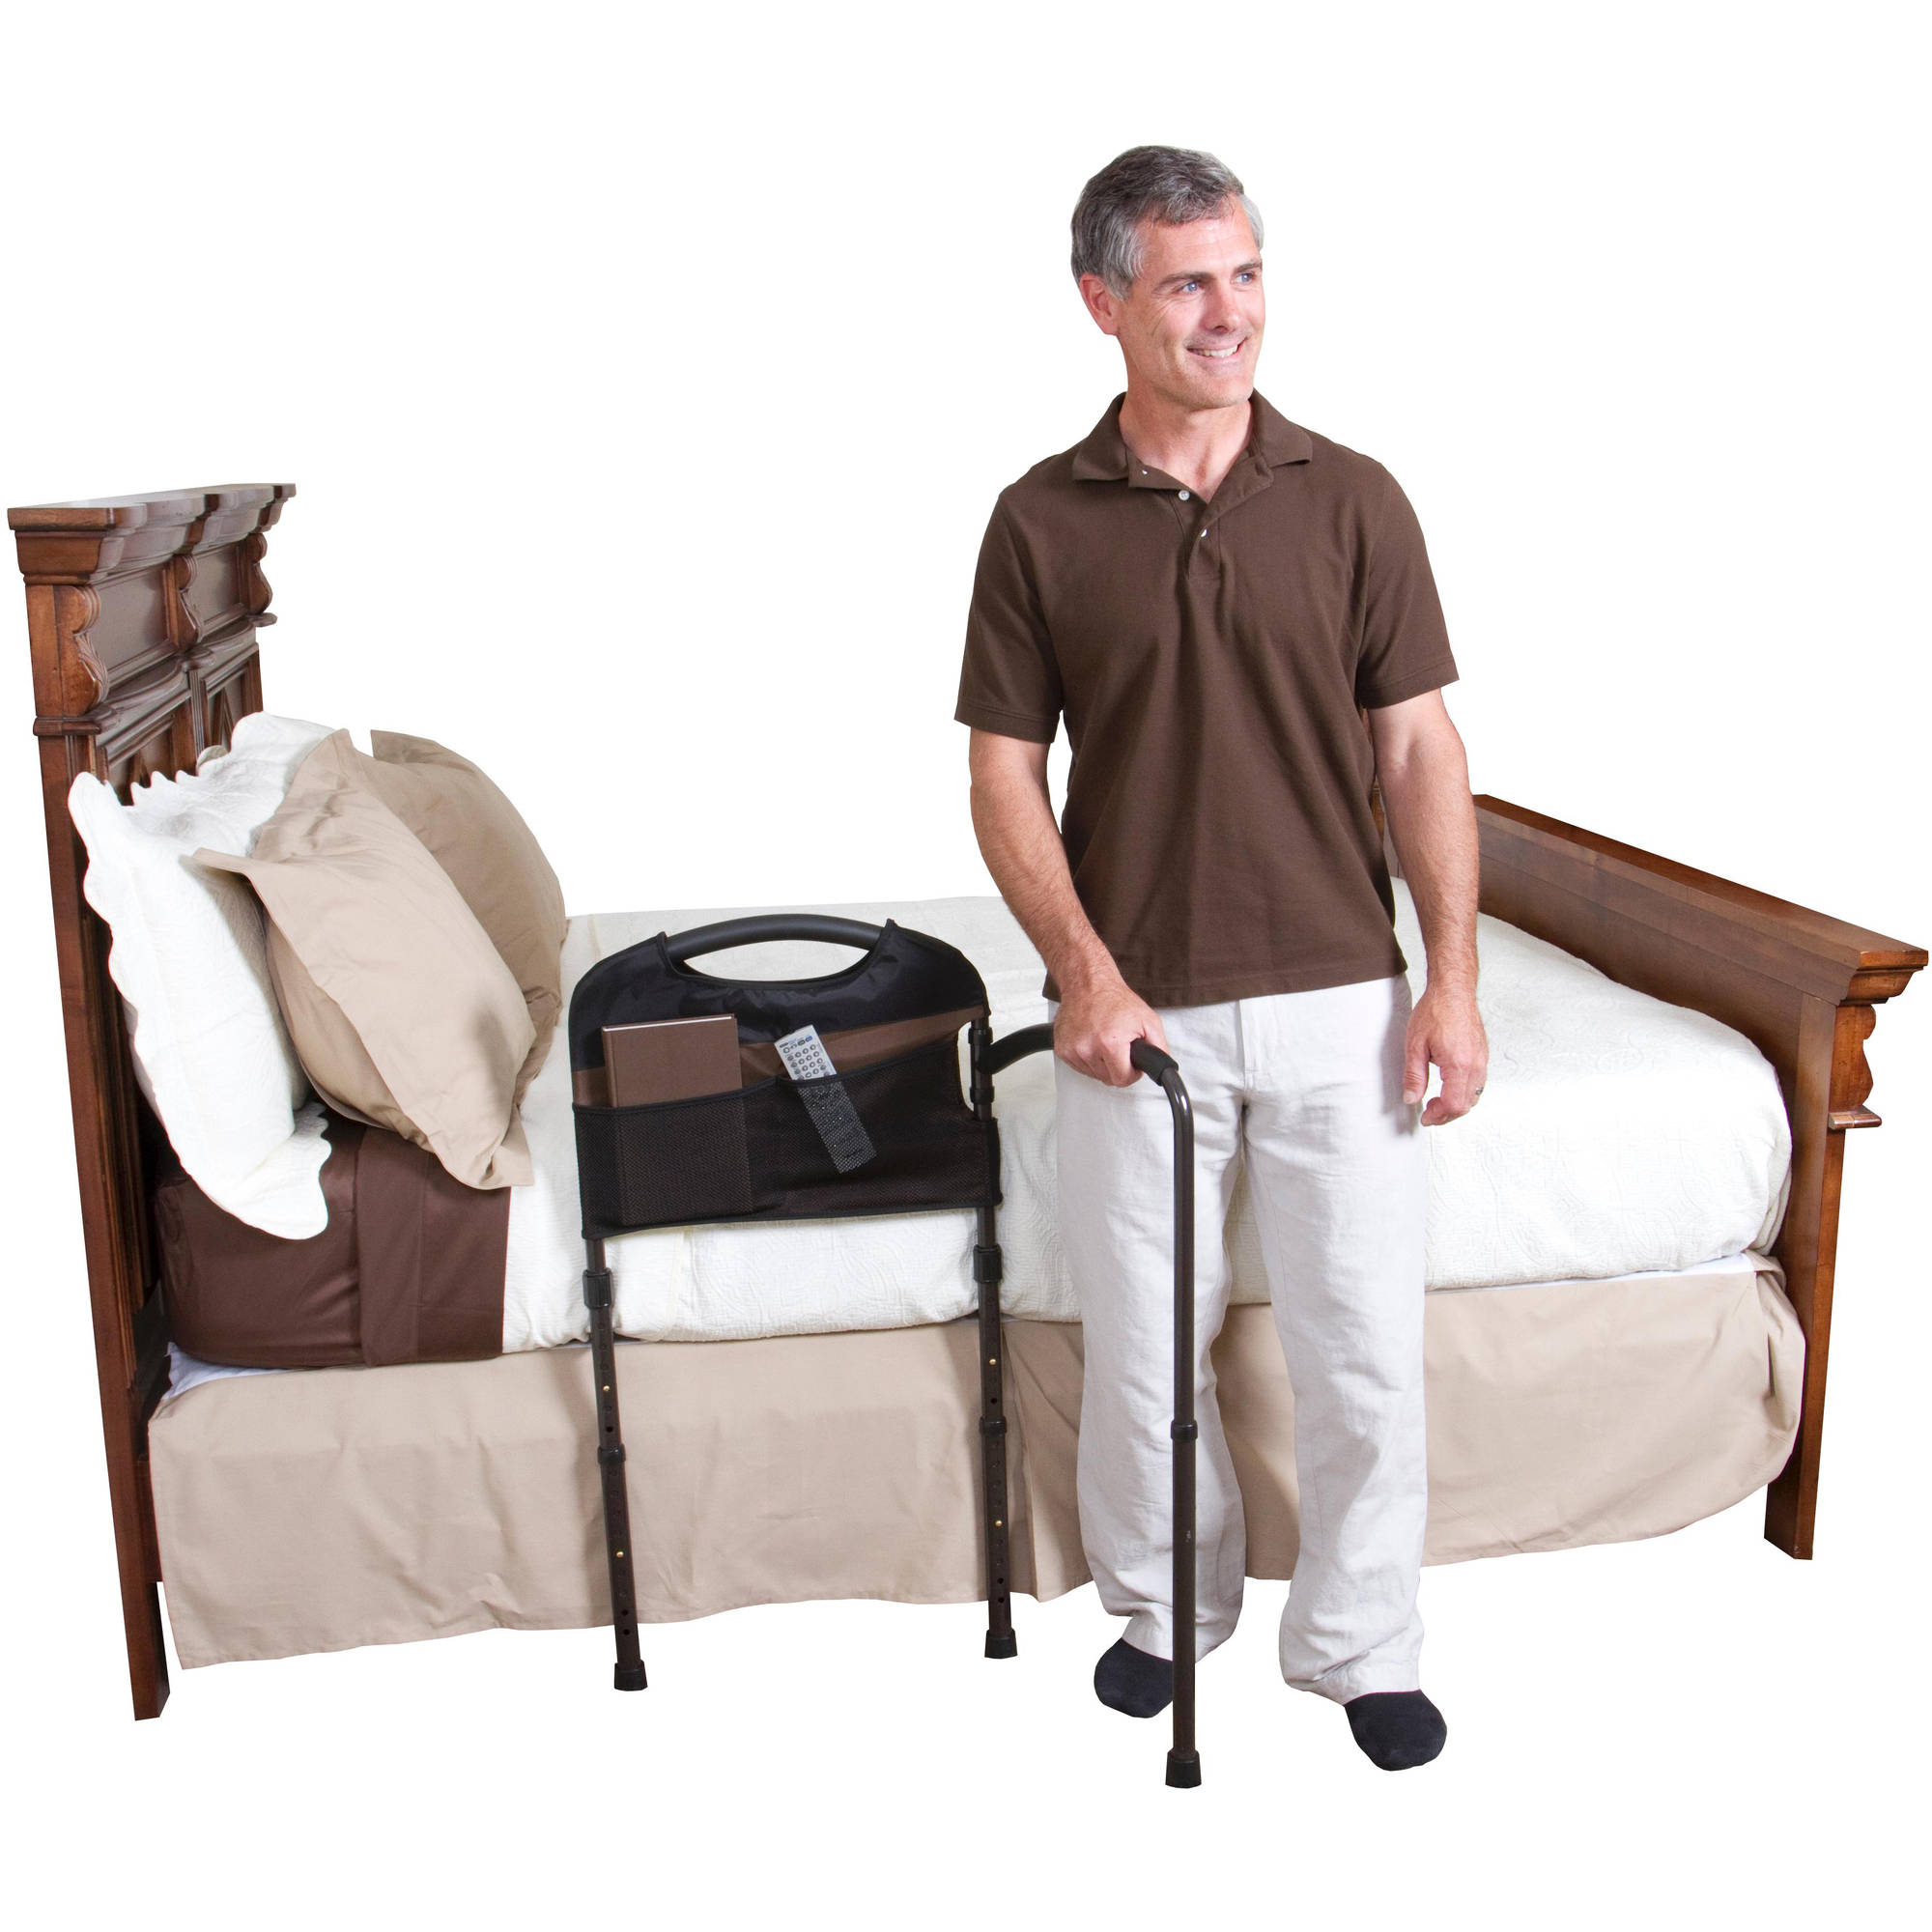 Stander Mobility Home Bed Rail - Adjustable Swing-out Hand Rail + Pouch